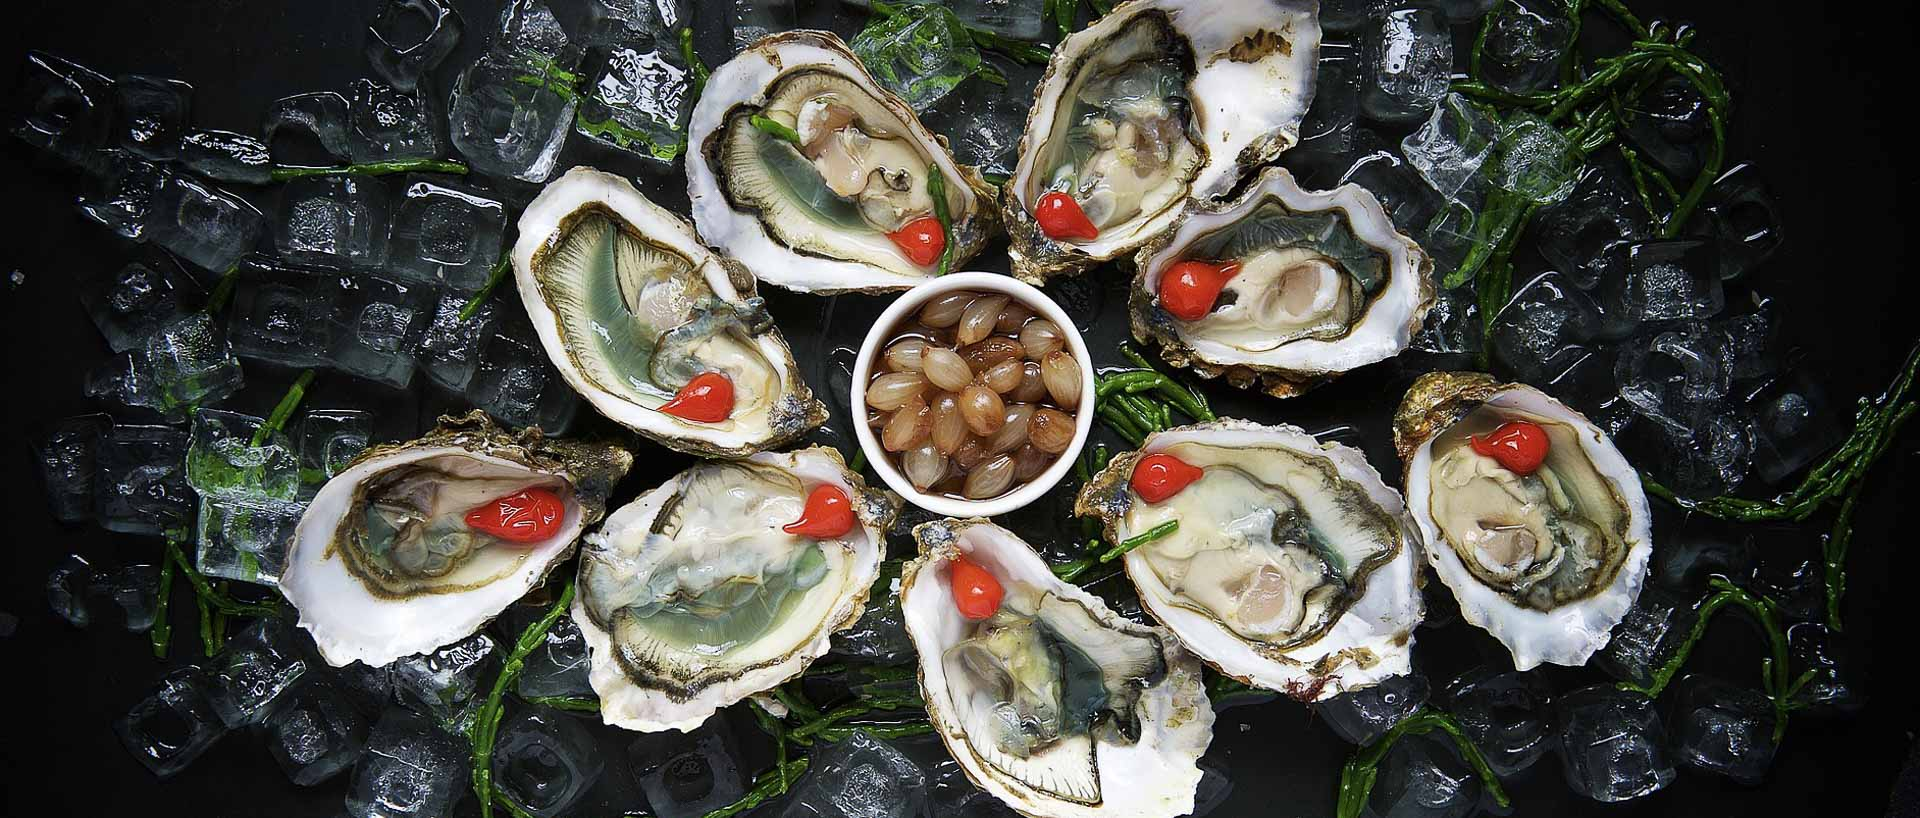 Oysters in Antwerp